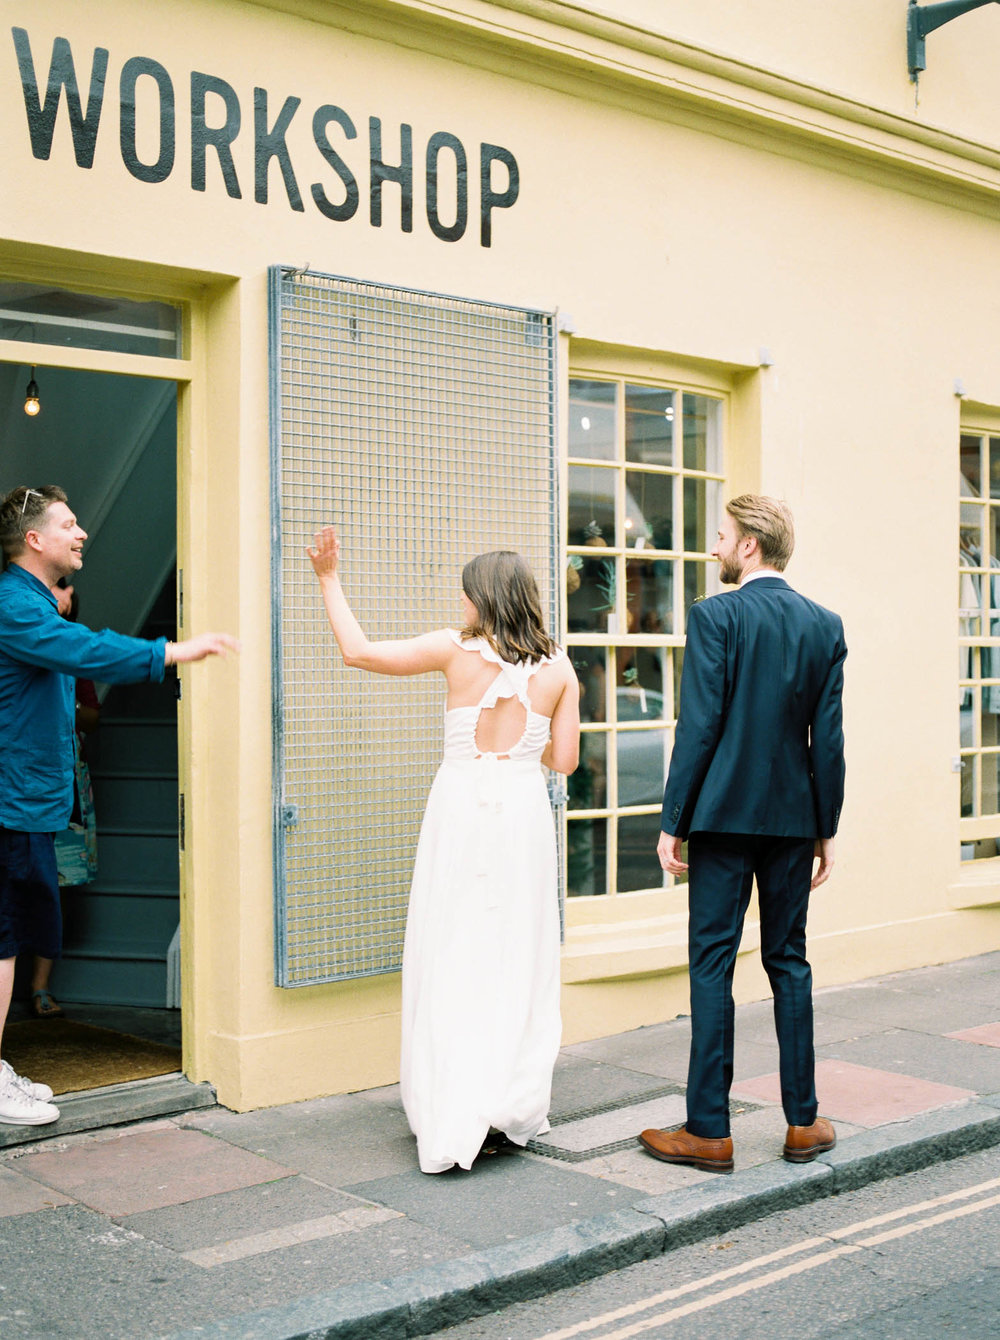 The Anna Edit Wedding Workshop Brighton